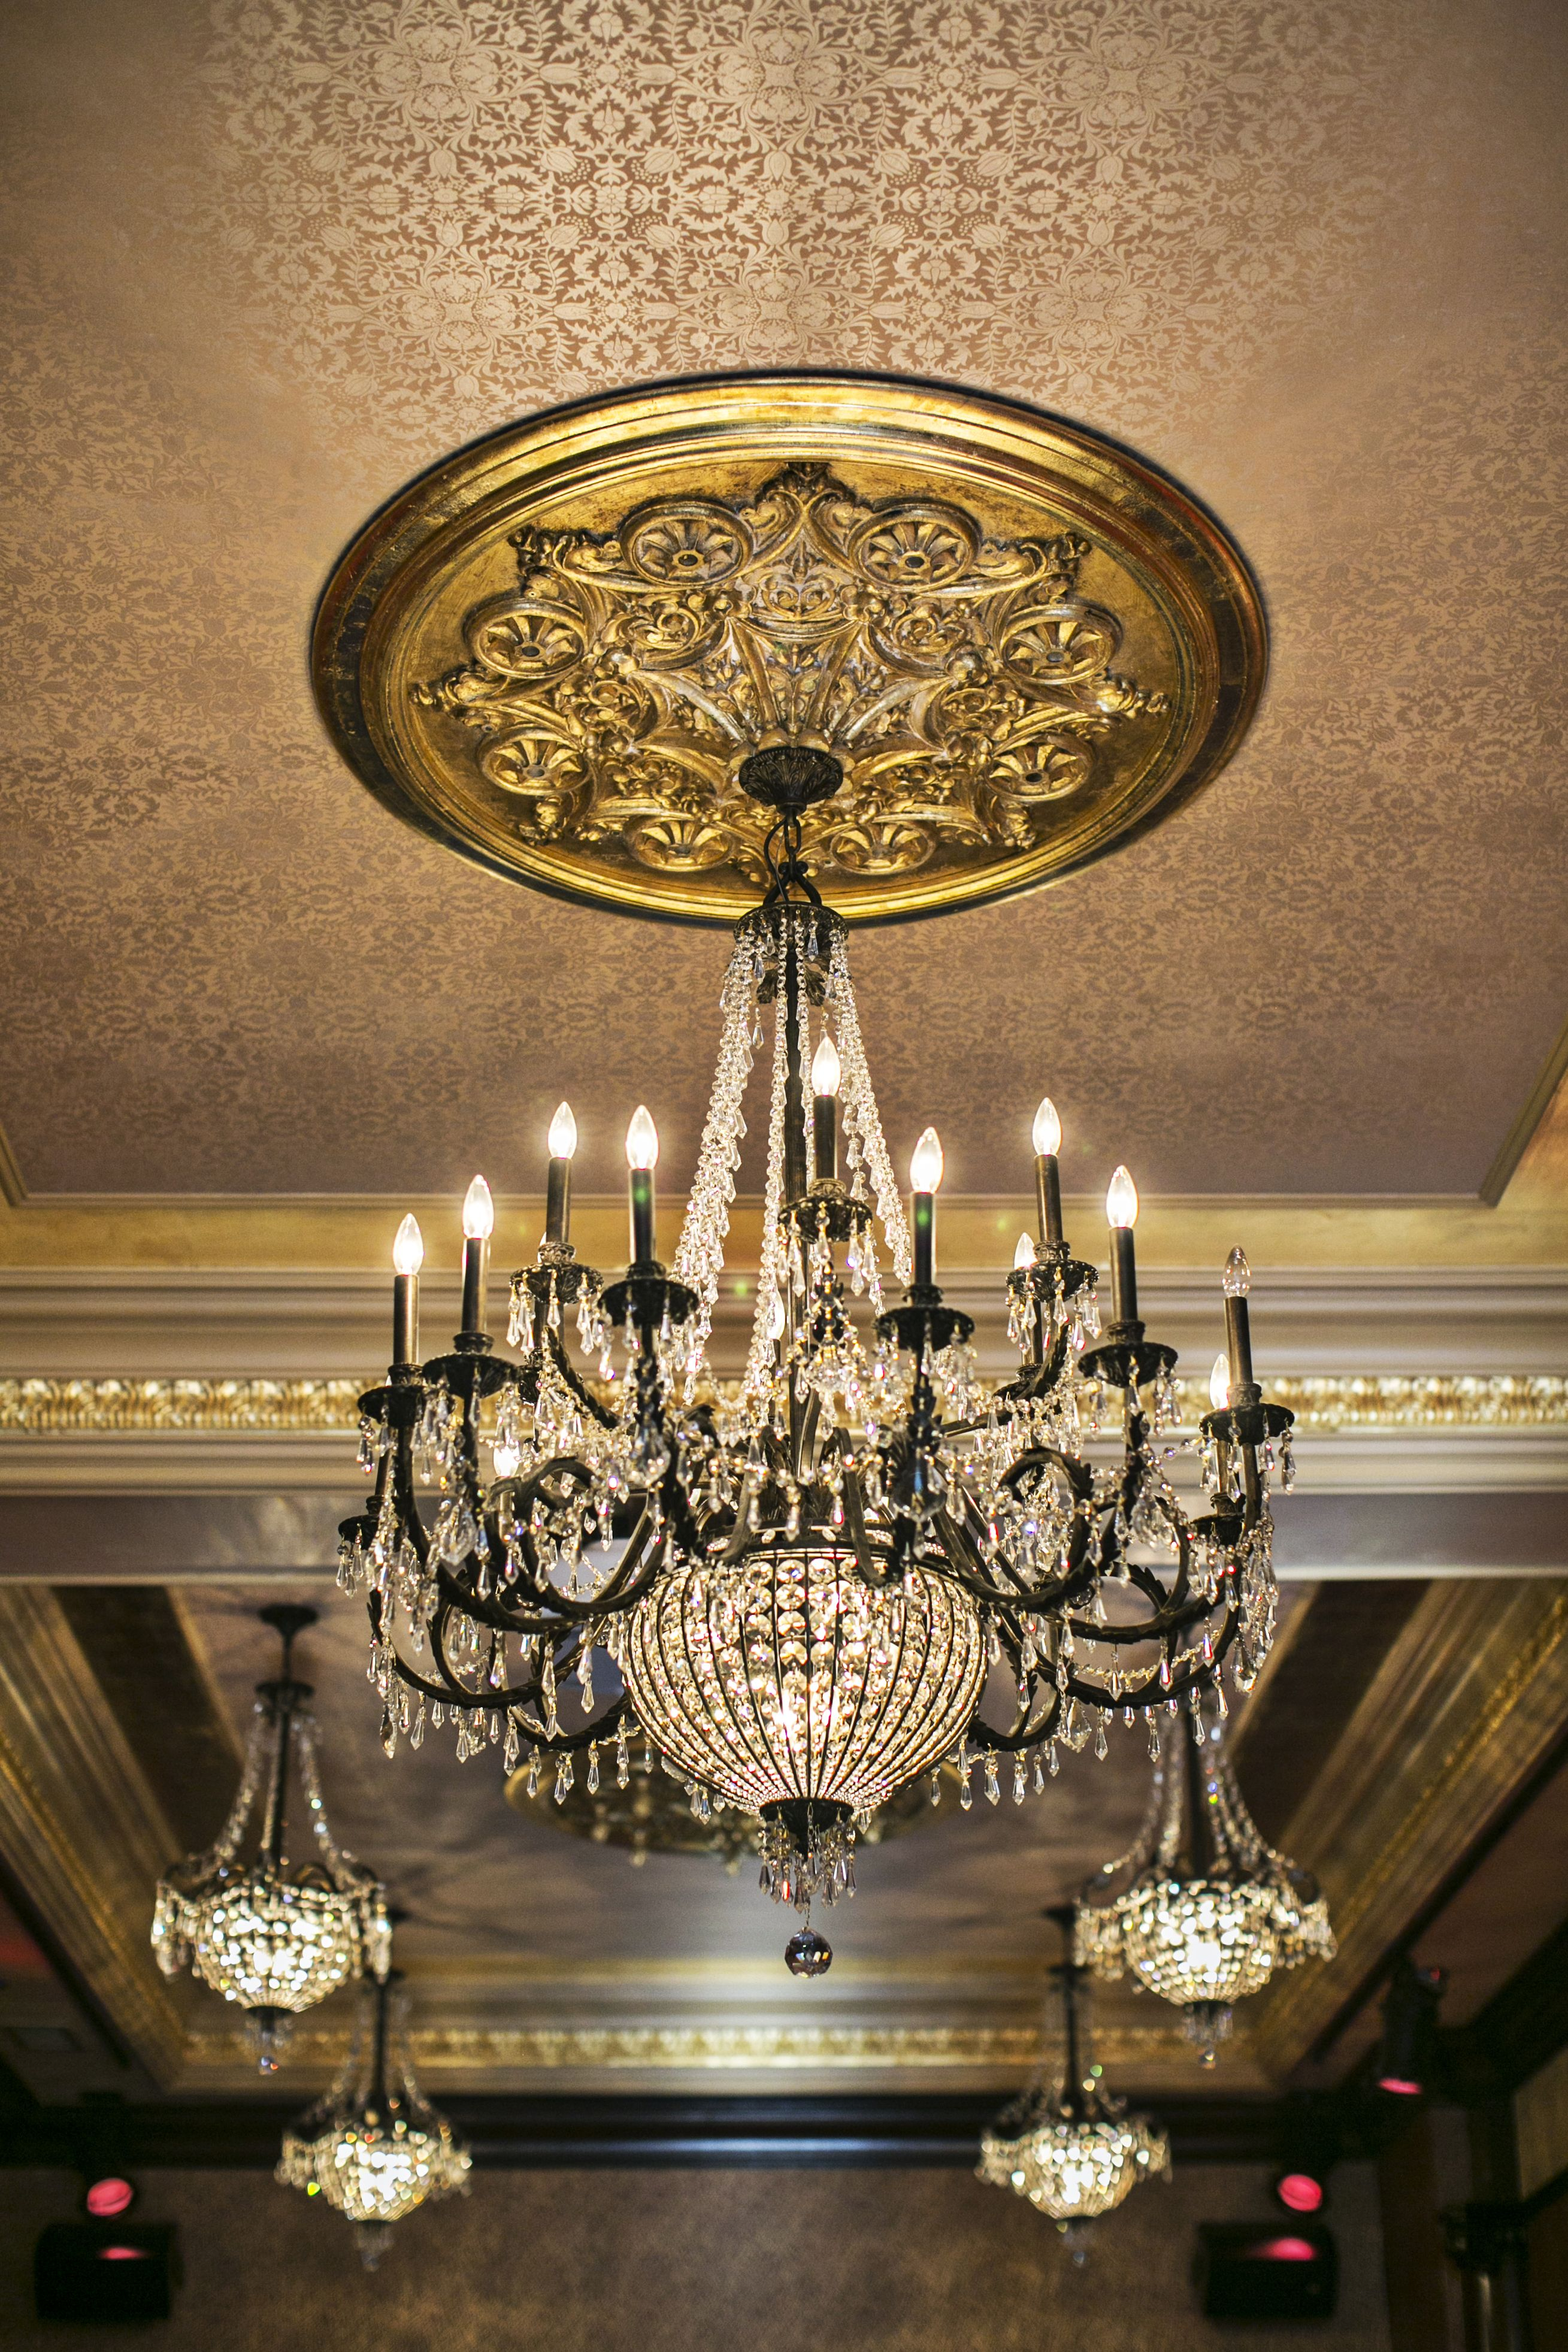 Morris ceiling is partnered with a beautiful chandelier in the ri morris ceiling is partnered with a beautiful chandelier in the ri ra irish pub of las vegas arubaitofo Image collections